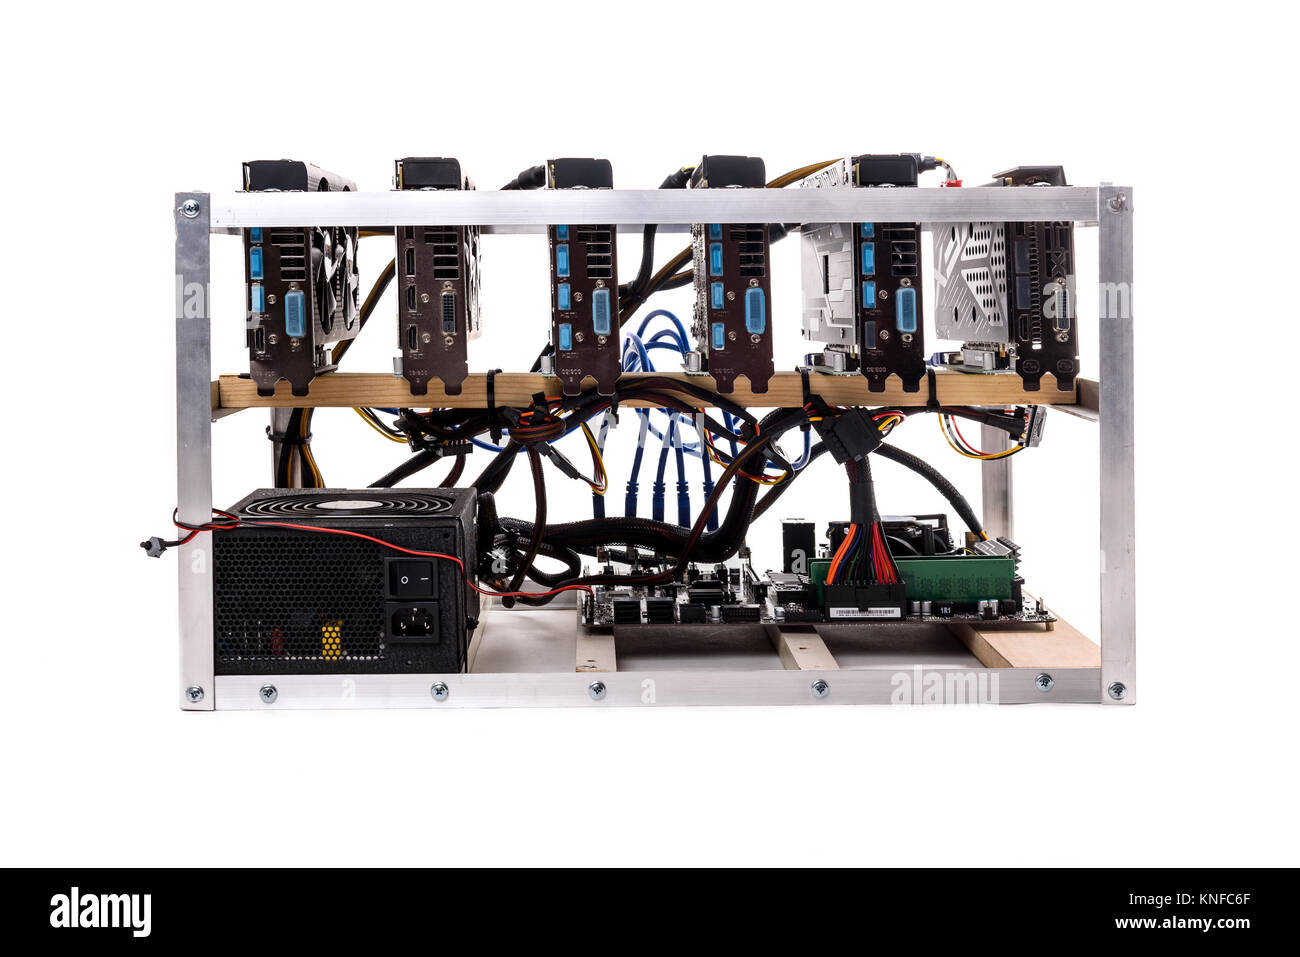 Diy Litecoin Mining Rig Stock Cryptocurrency